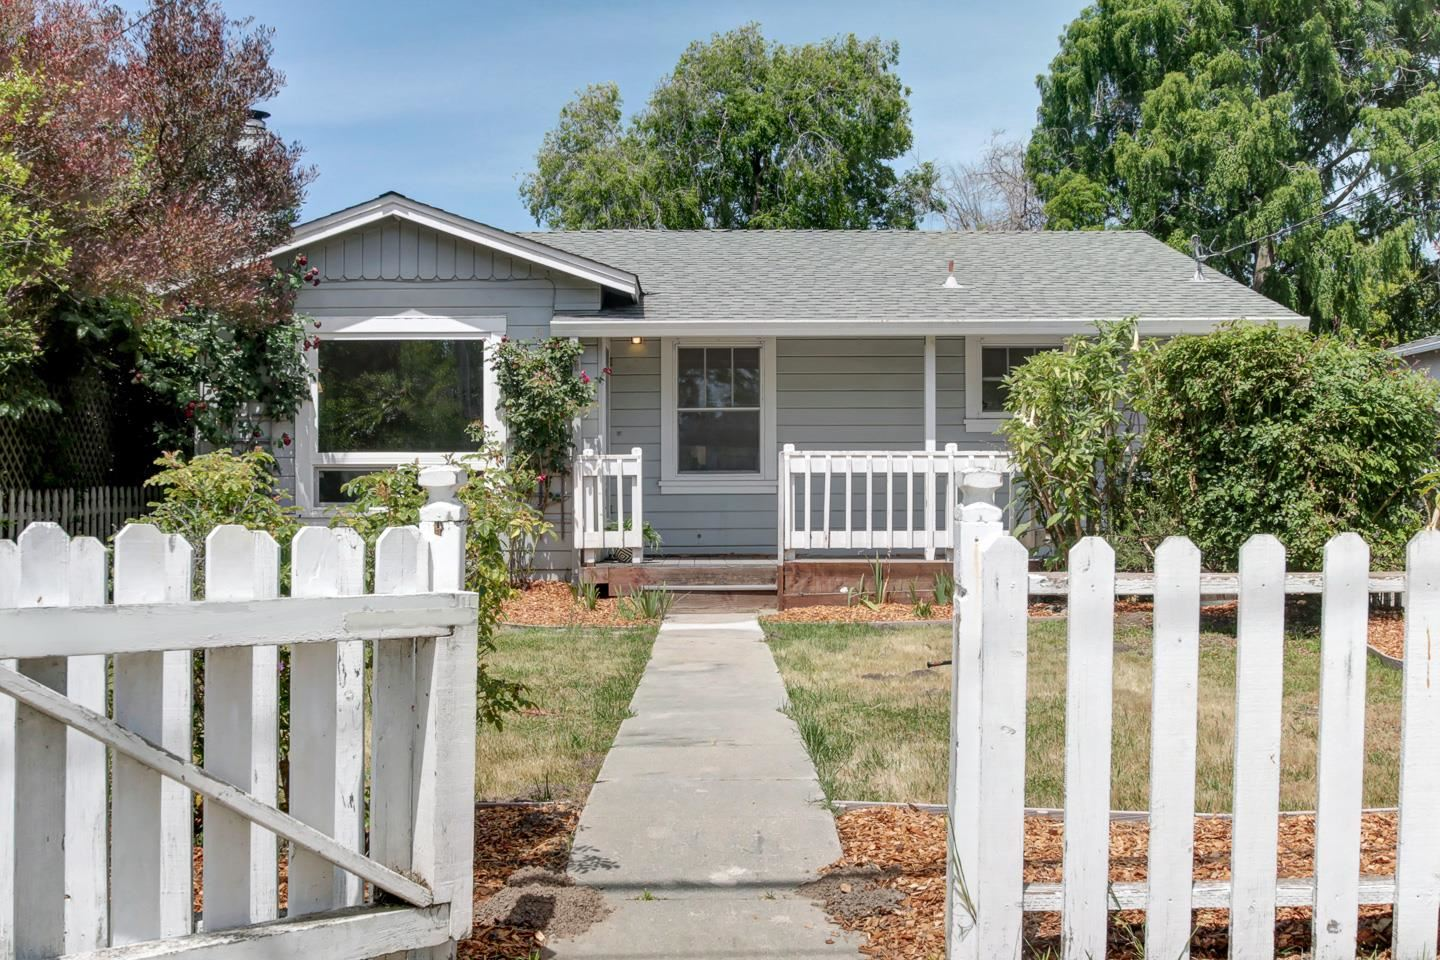 Photo for 1023 N Branciforte AVE, SANTA CRUZ, CA 95062 (MLS # ML81793752)